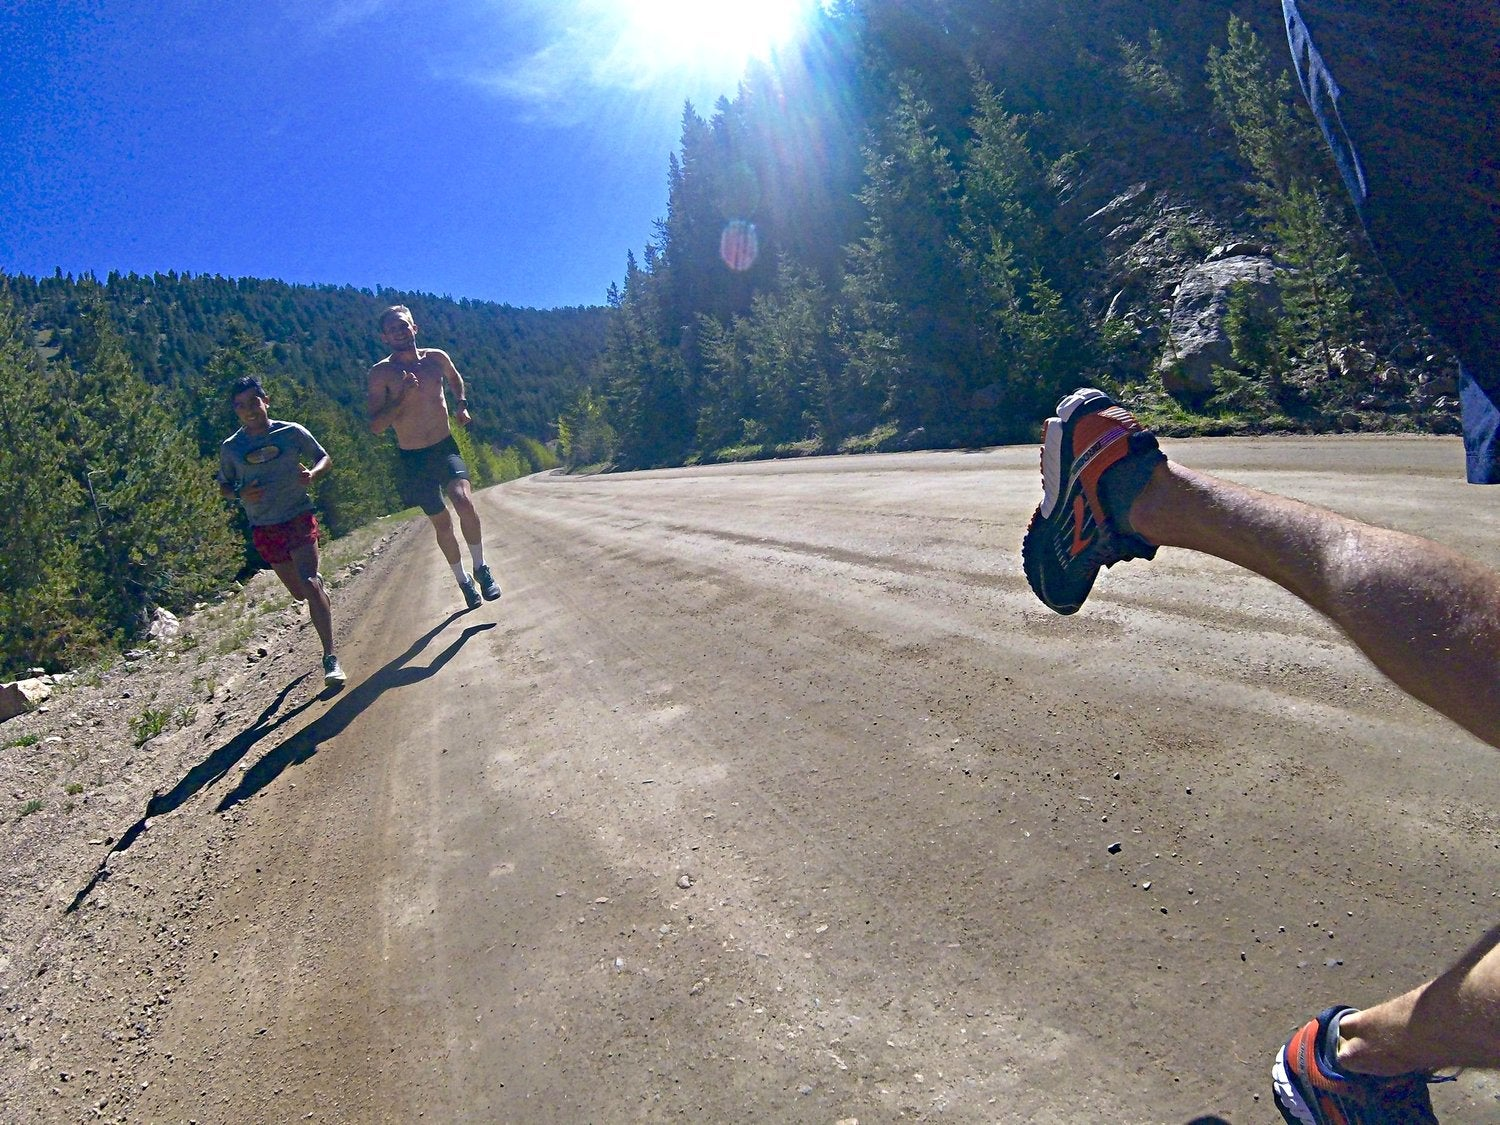 Running in Colorado training for the Olympic Trials qualifying time